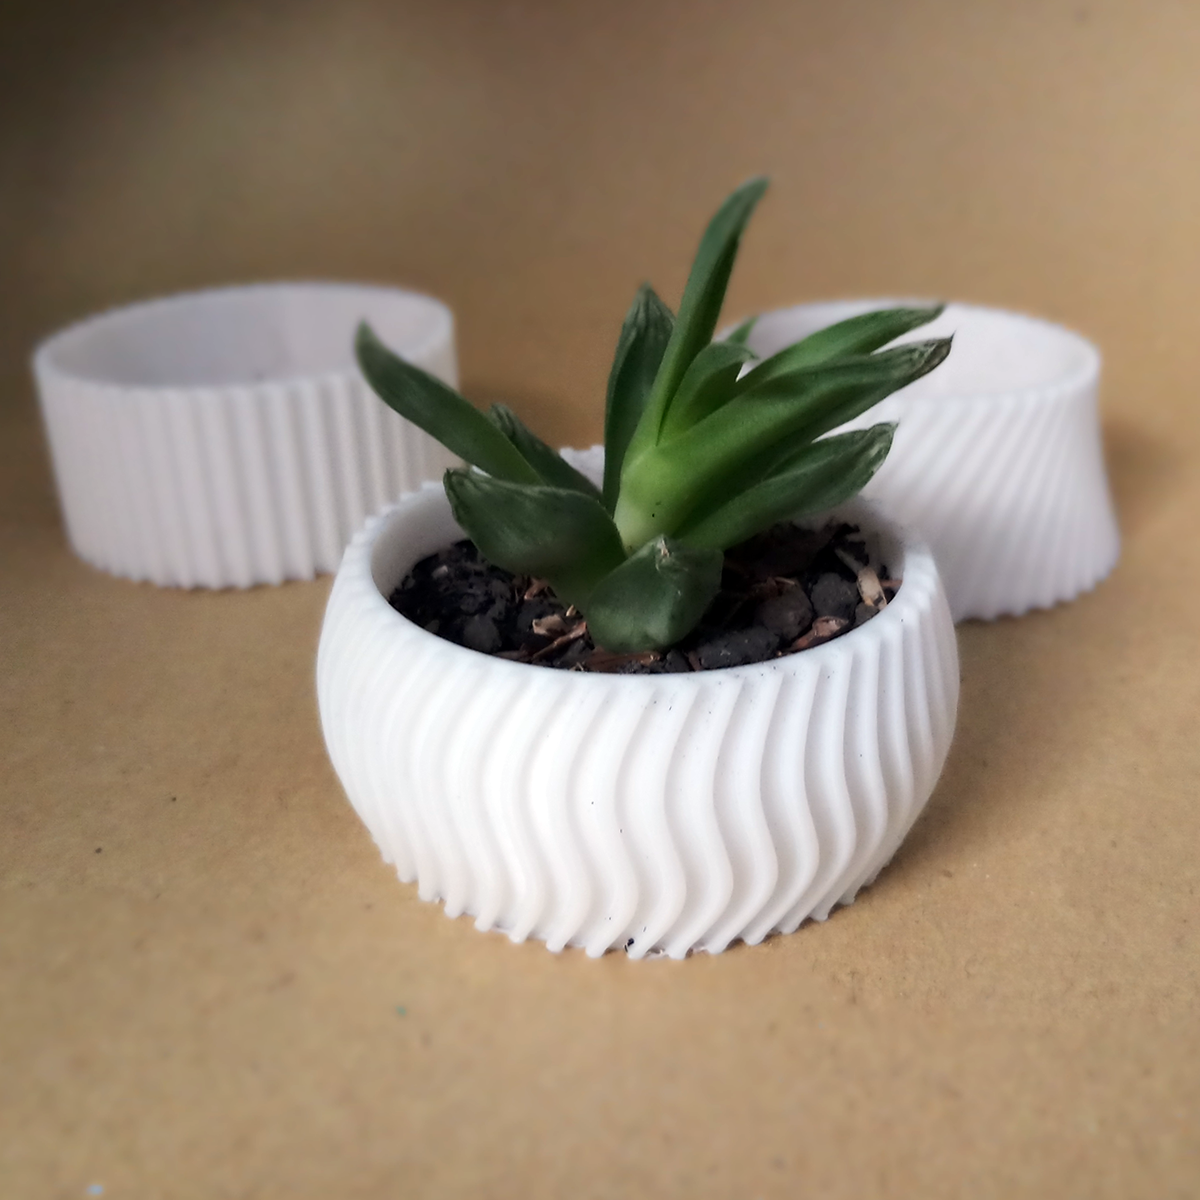 20200726_163354.png Download free STL file Cactus Planter 2 - small • 3D printing object, Prigle